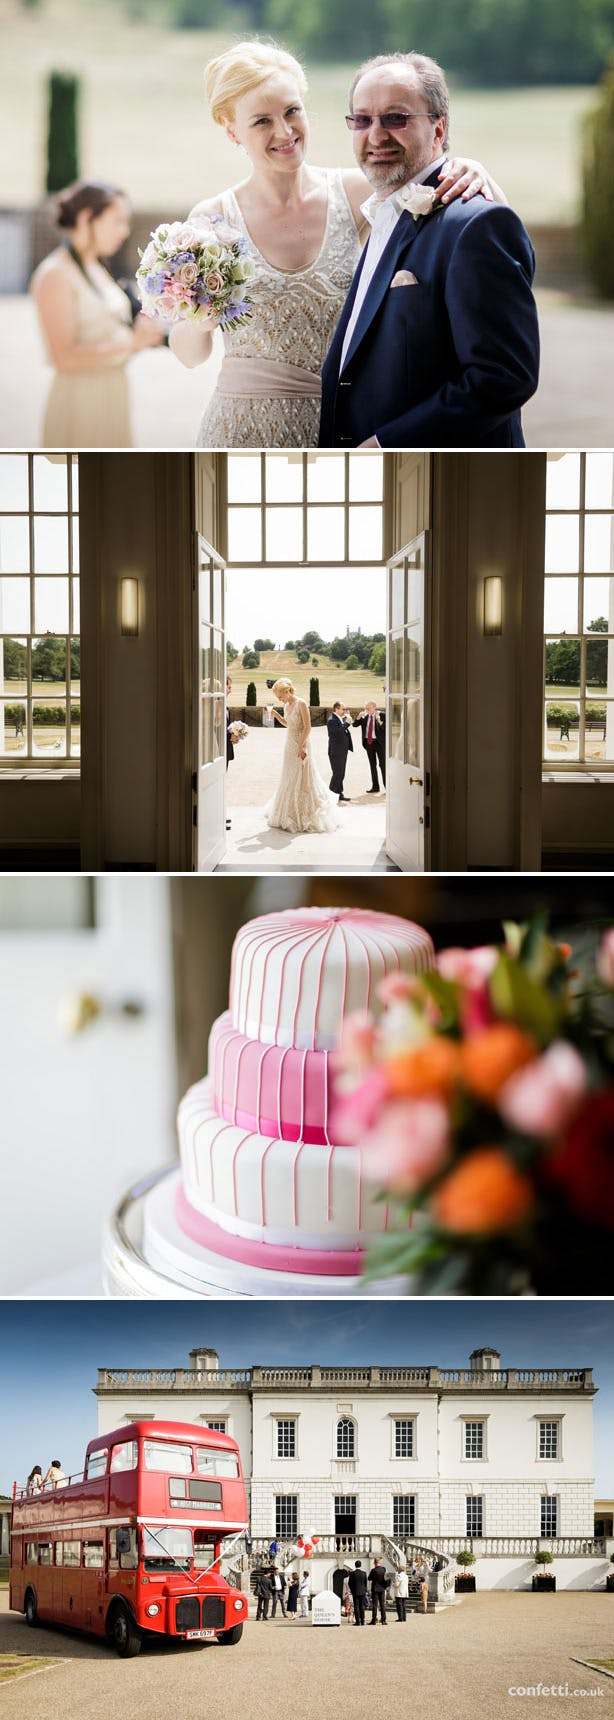 Ene and Graham's Real Wedding by Douglas Fry | Confetti.co.uk